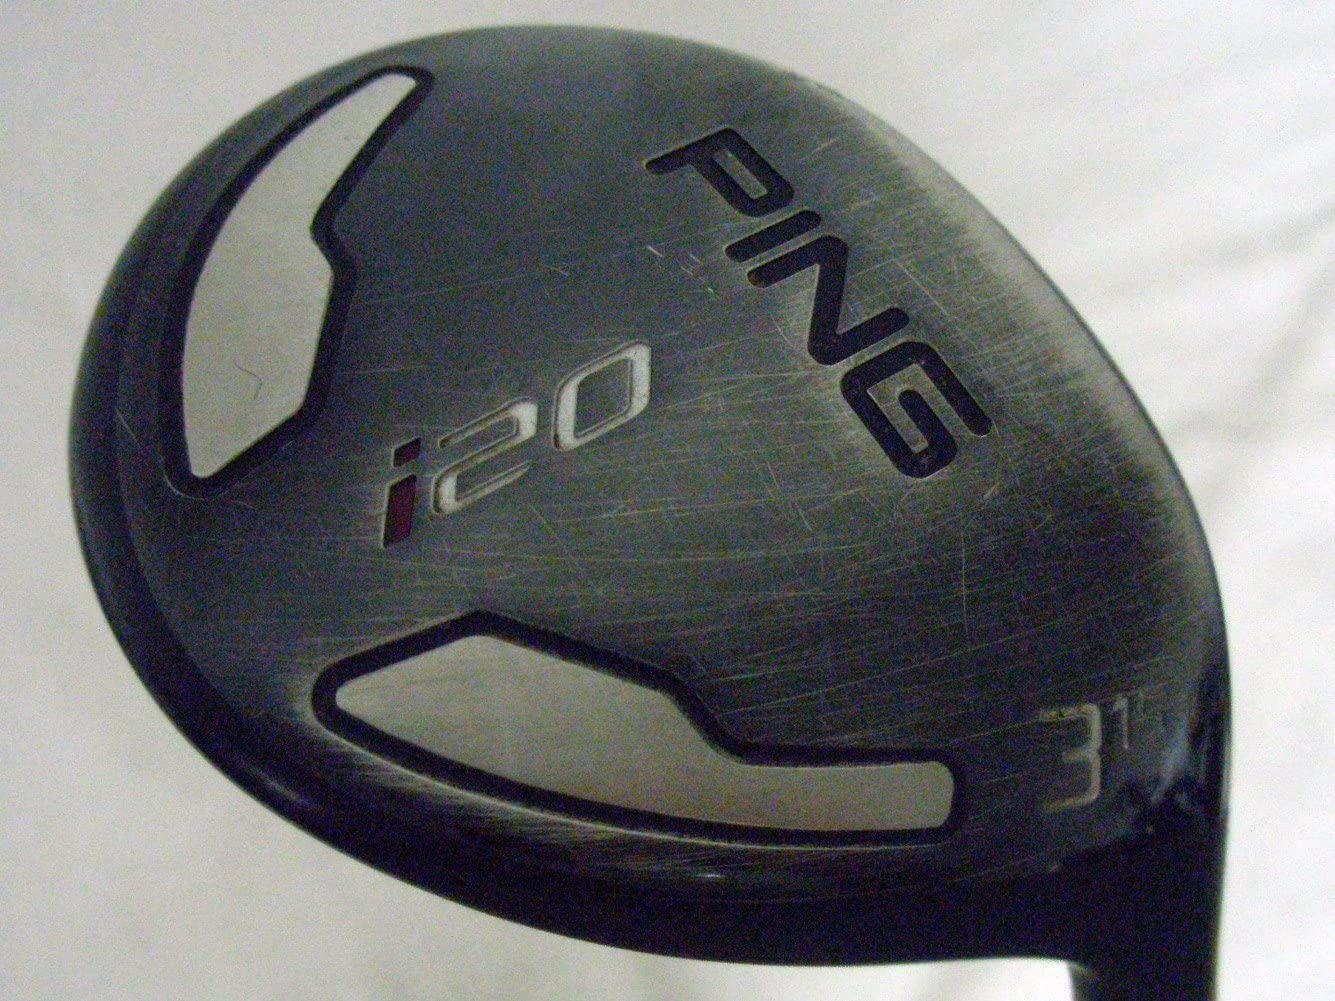 Used Ping I20 Fairway Wood 3-wood 3w 15 Graphite Stiff Right